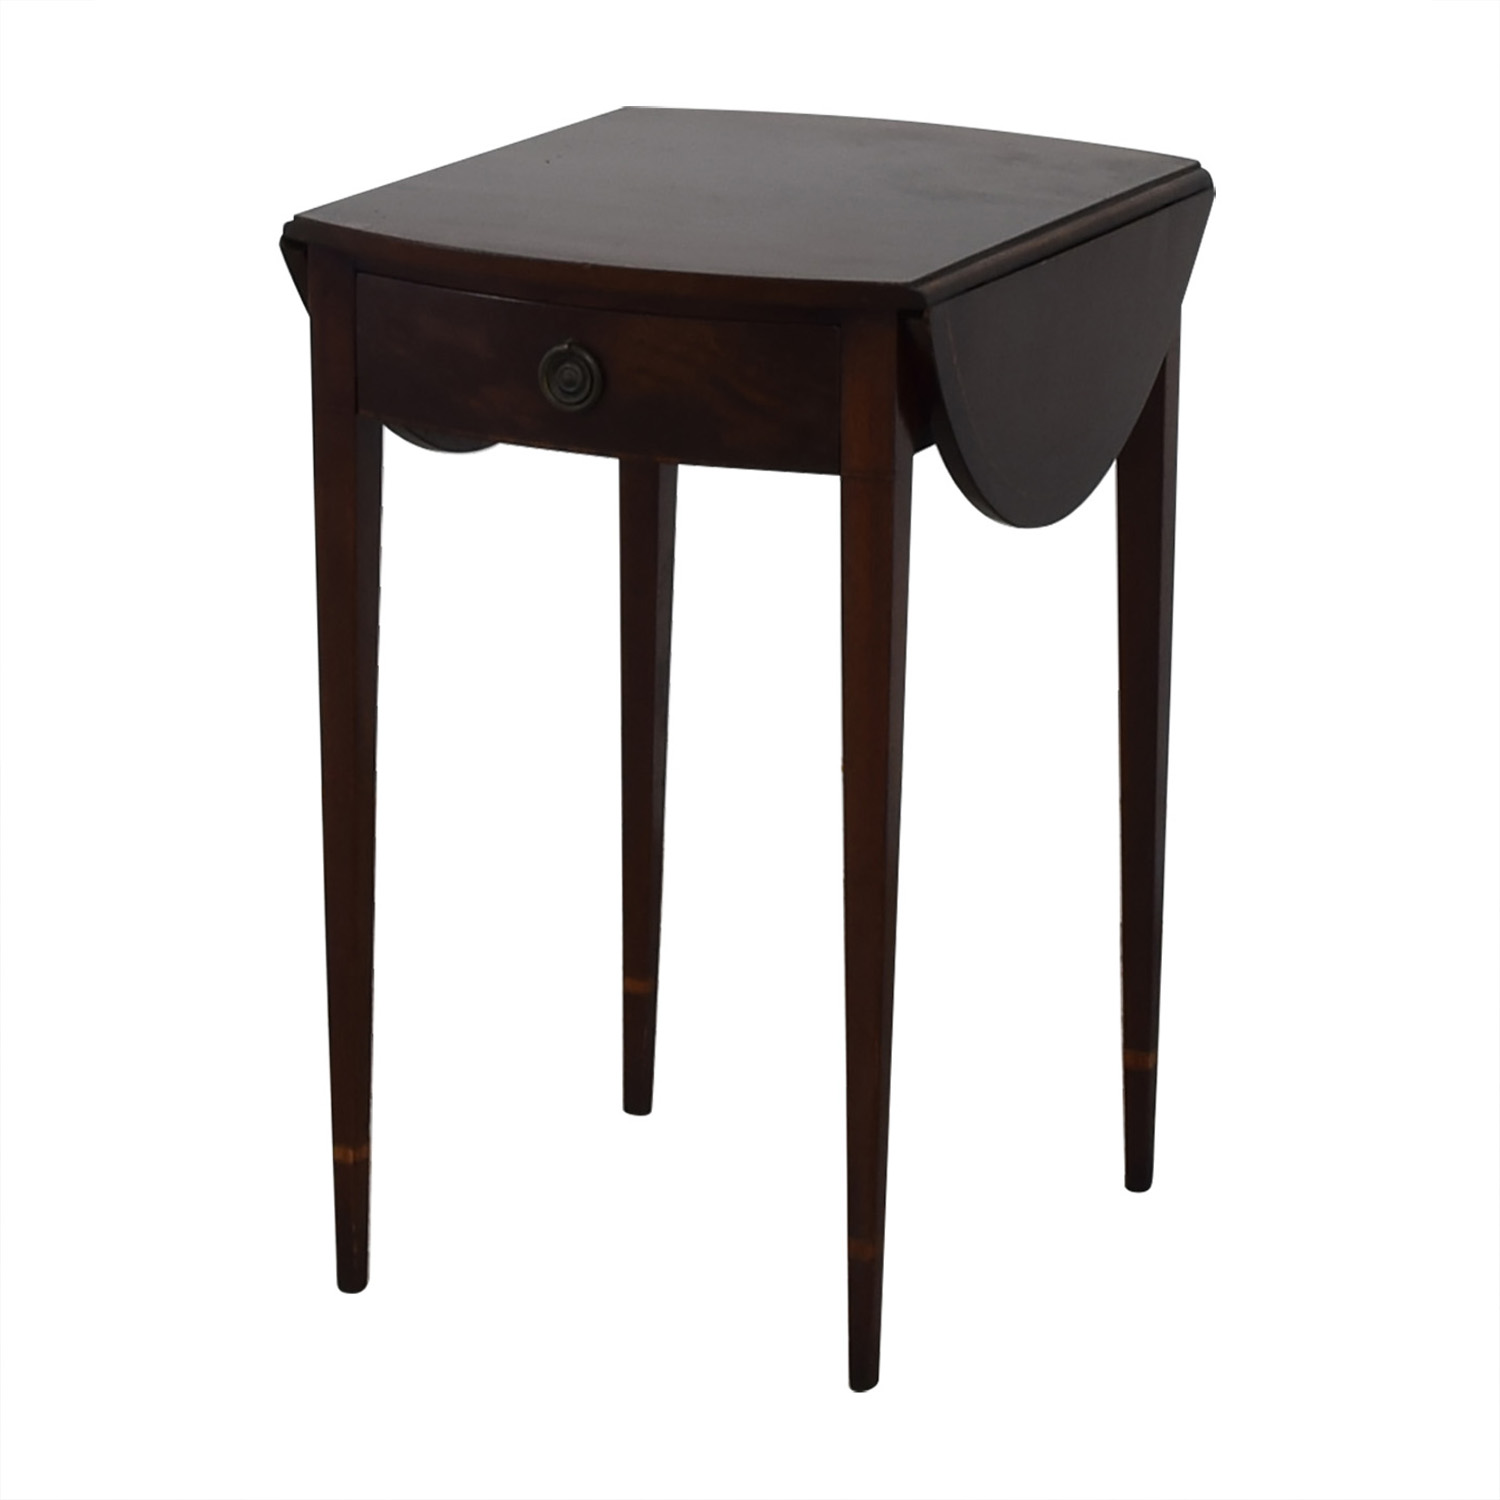 Beacon Hill Collection Oval Drop Leaf Accent Table Beacon Hill Collection